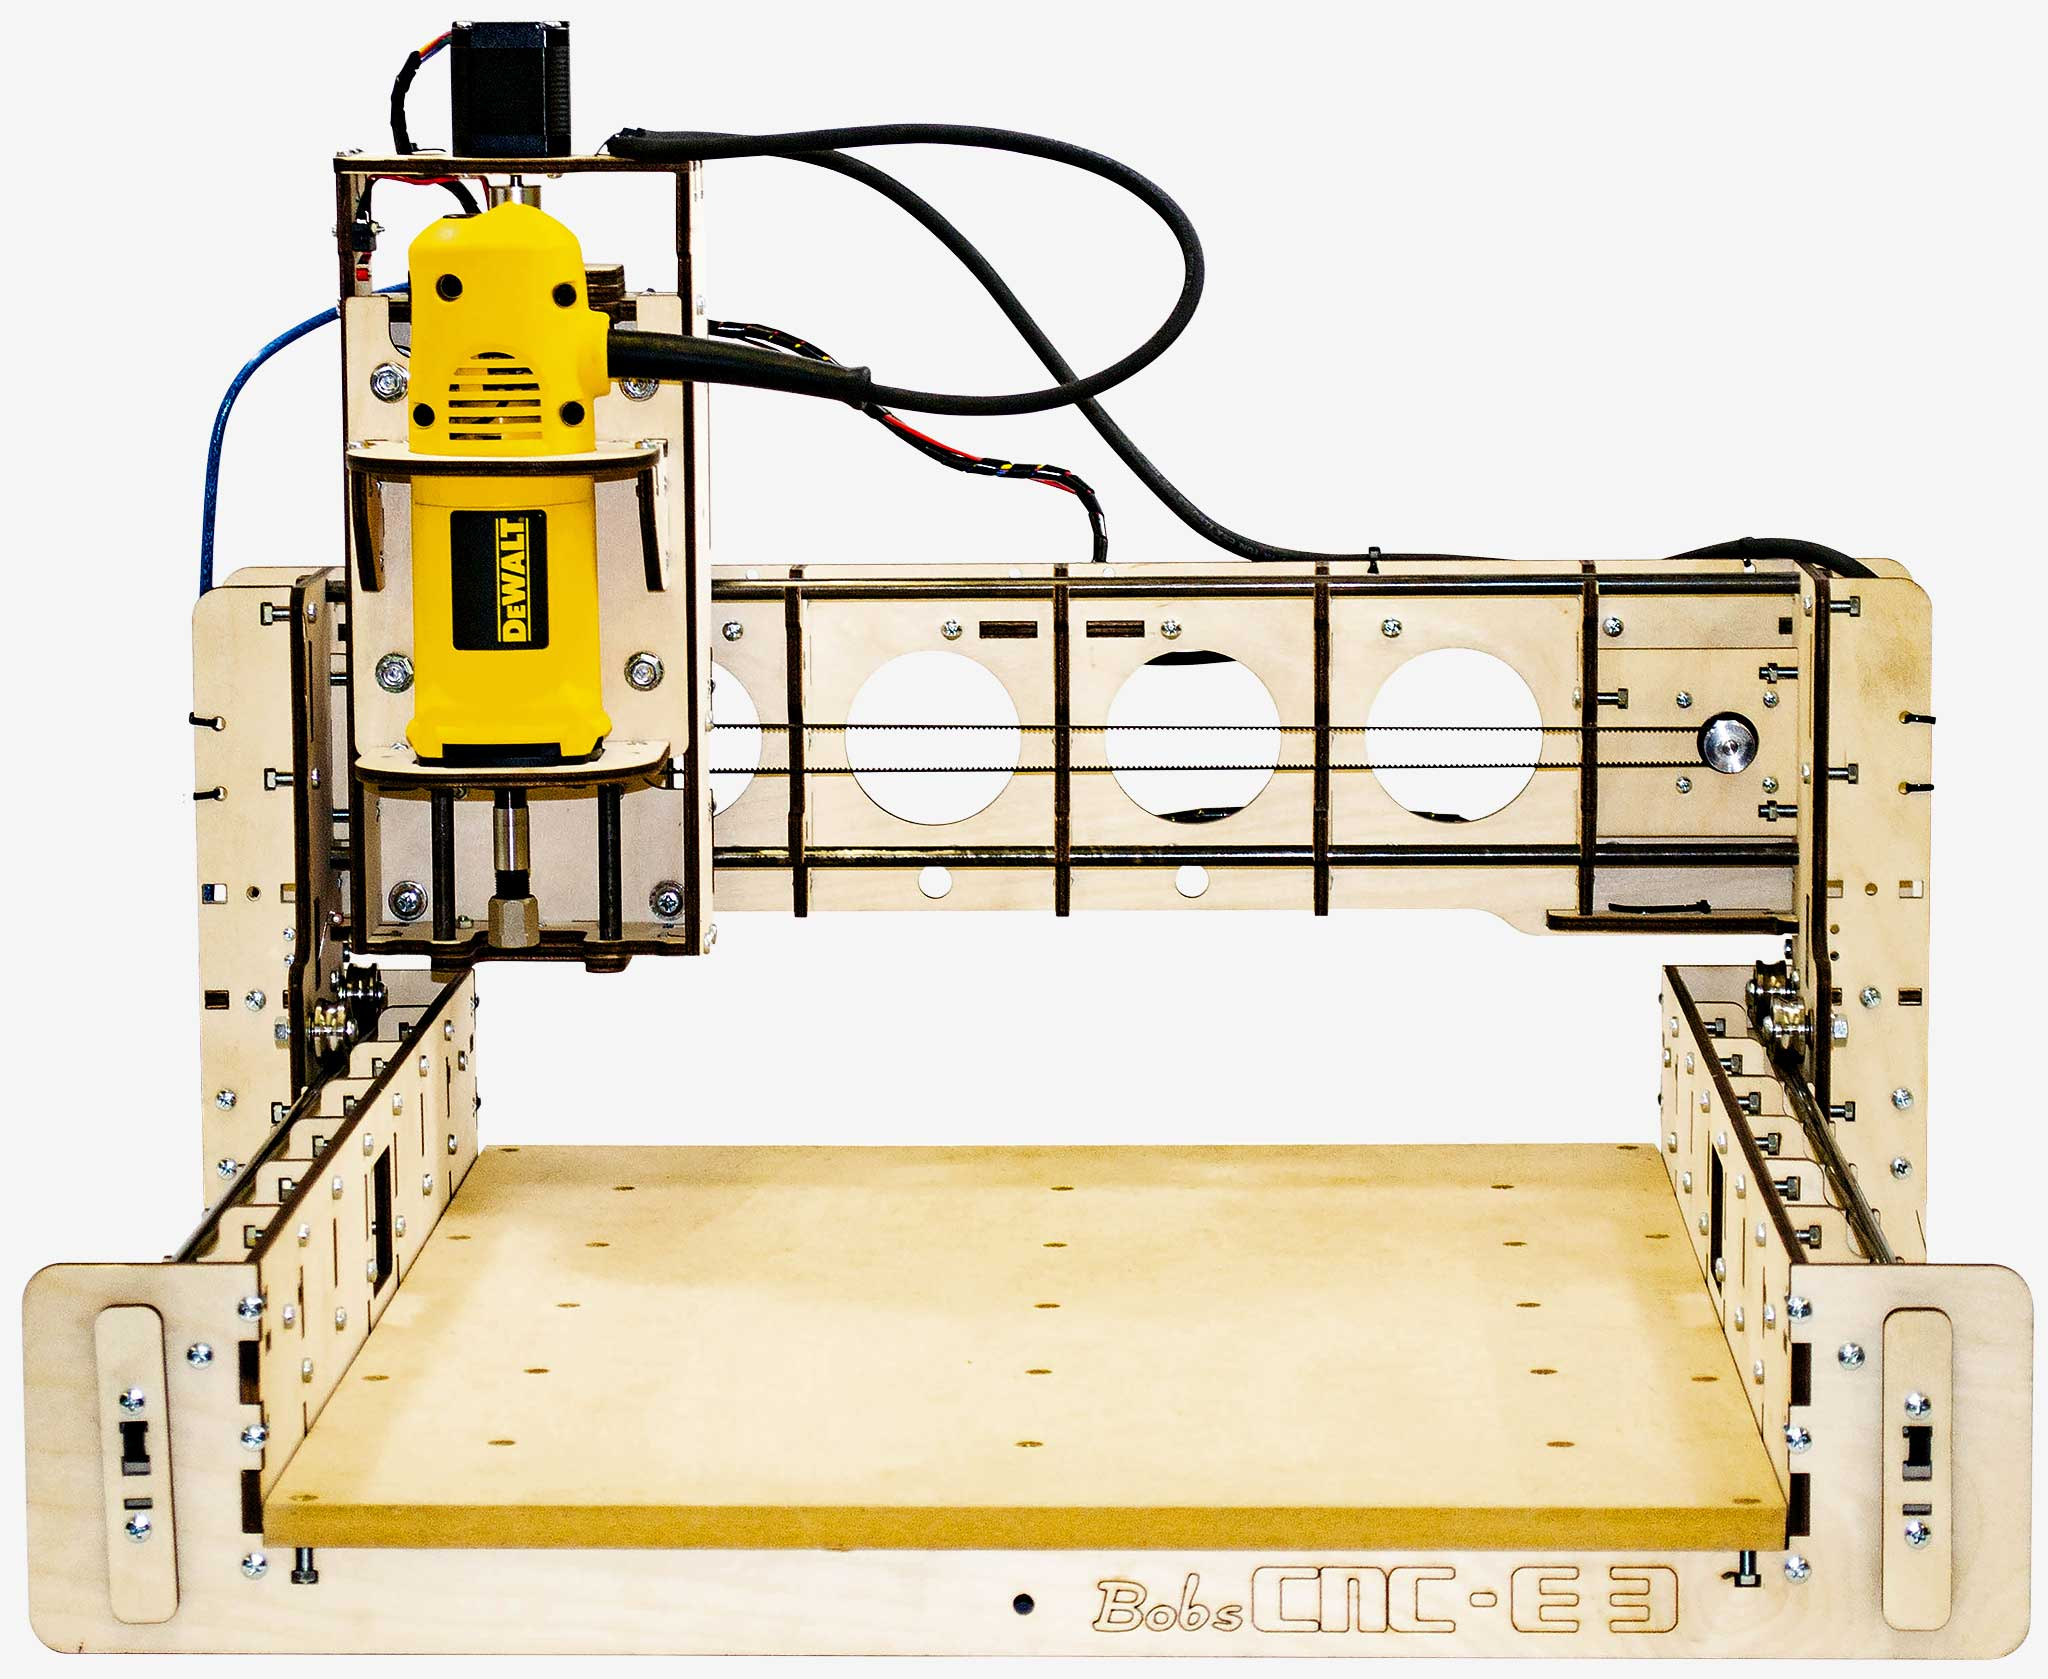 hight resolution of e3 cnc router kit bobscnc wood router wiring diagram